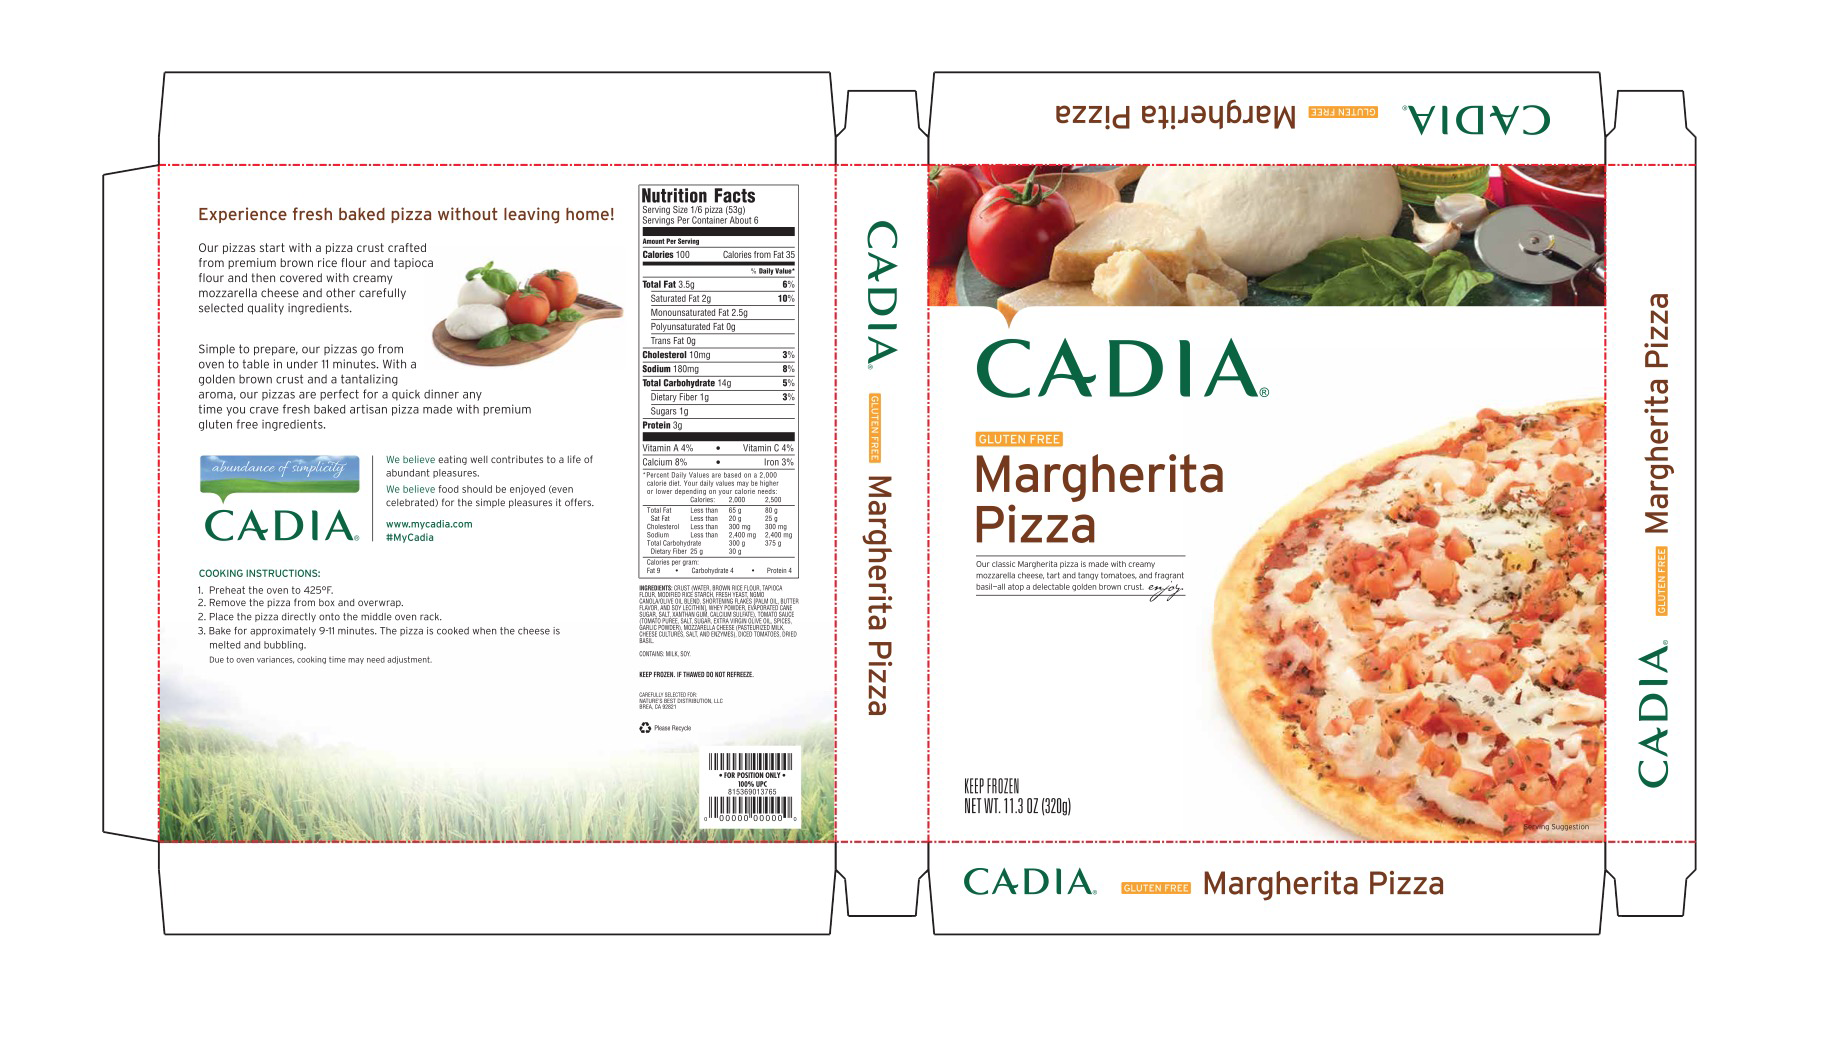 Cadia_Gluten_Free_Pizza_Margherita_Final.png